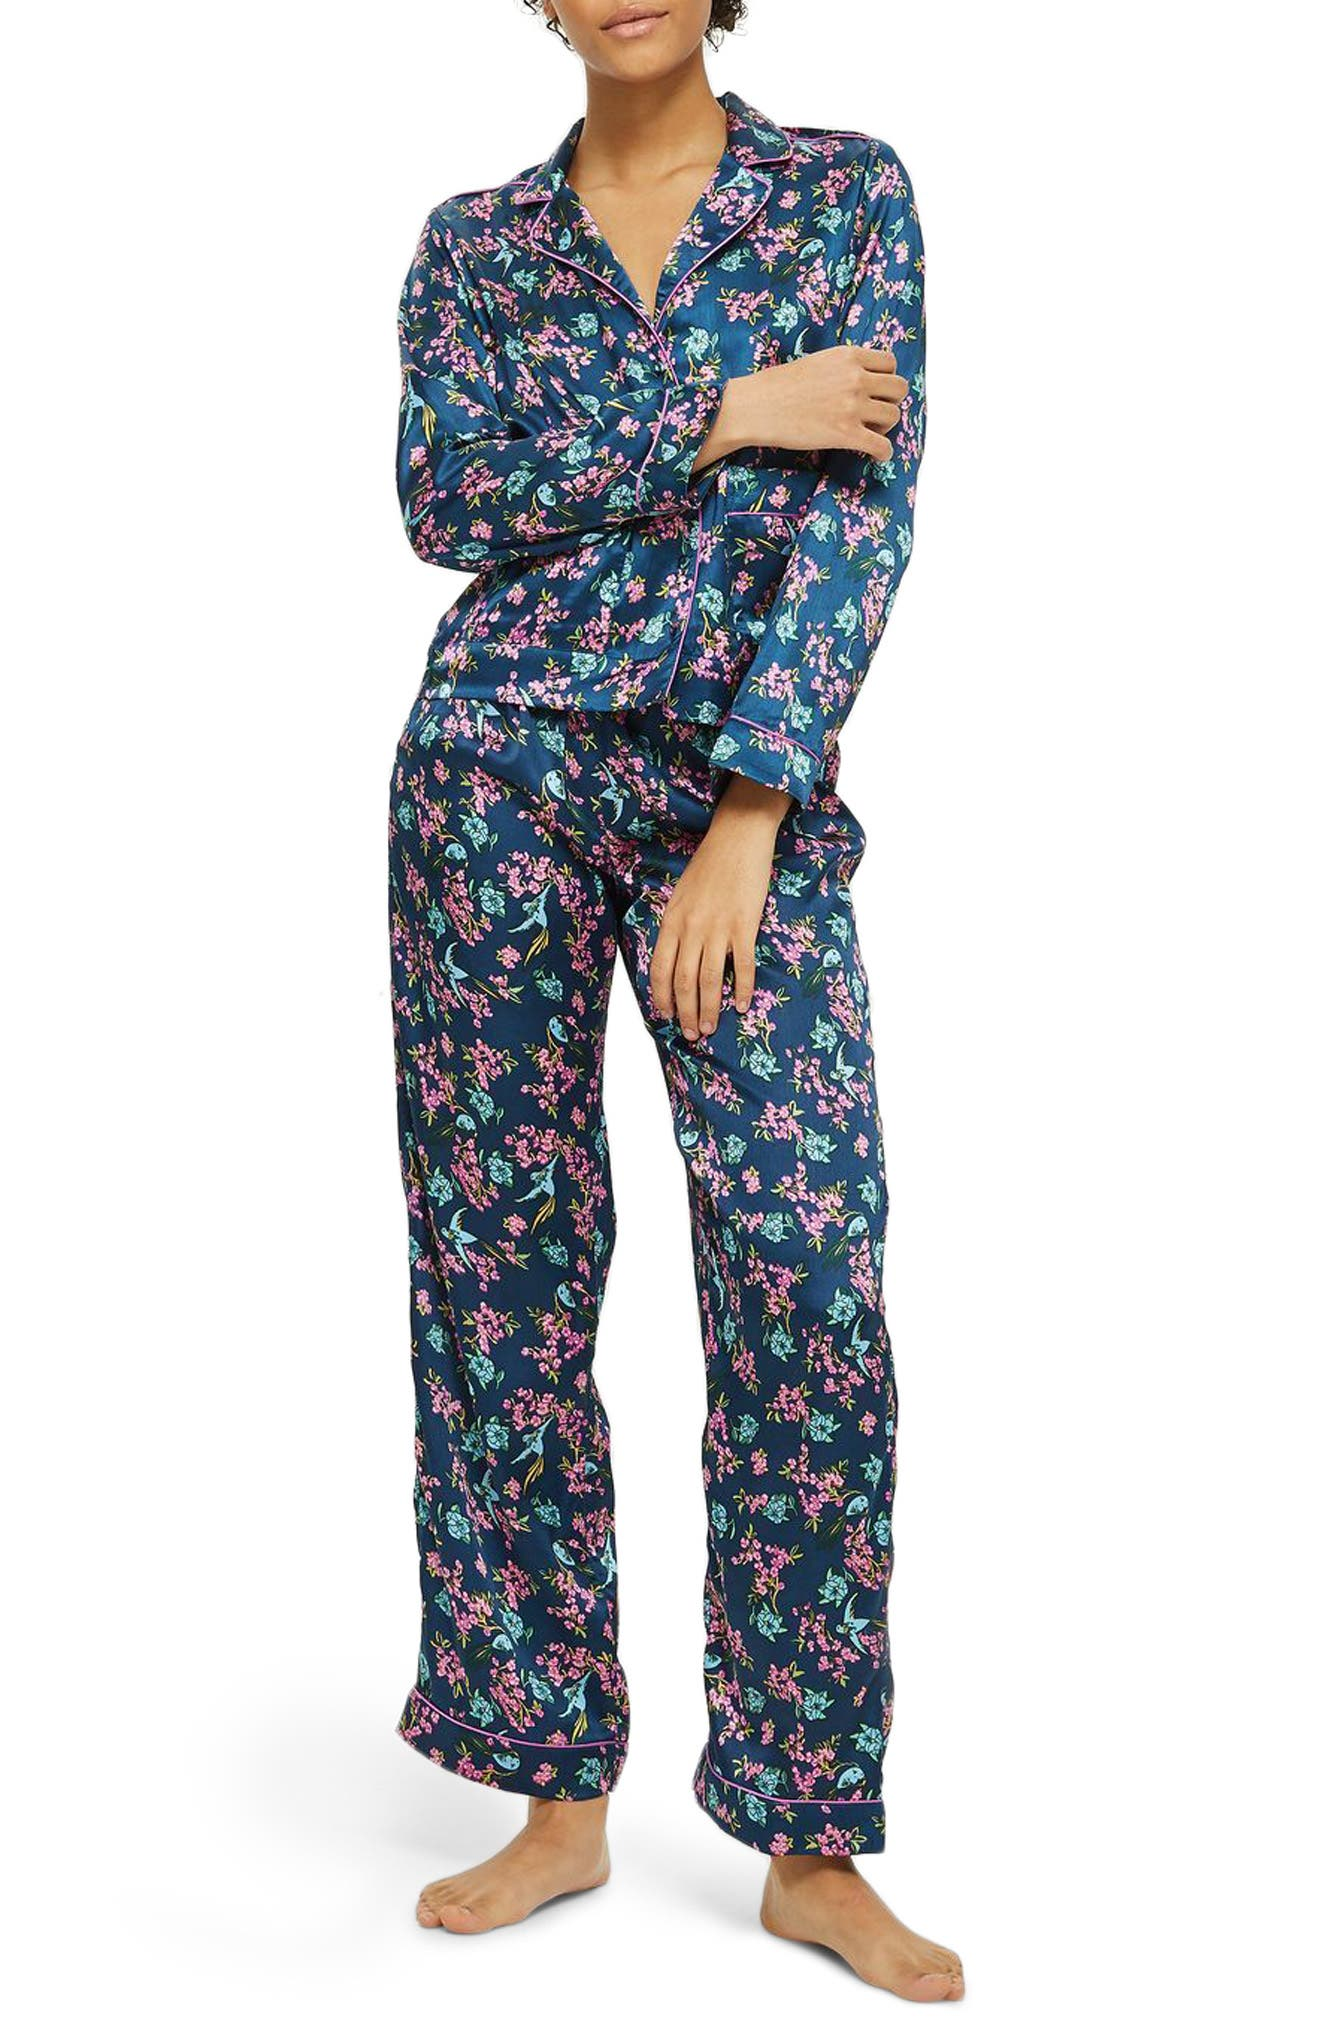 Bird Satin Pajamas,                         Main,                         color, Blue Multi